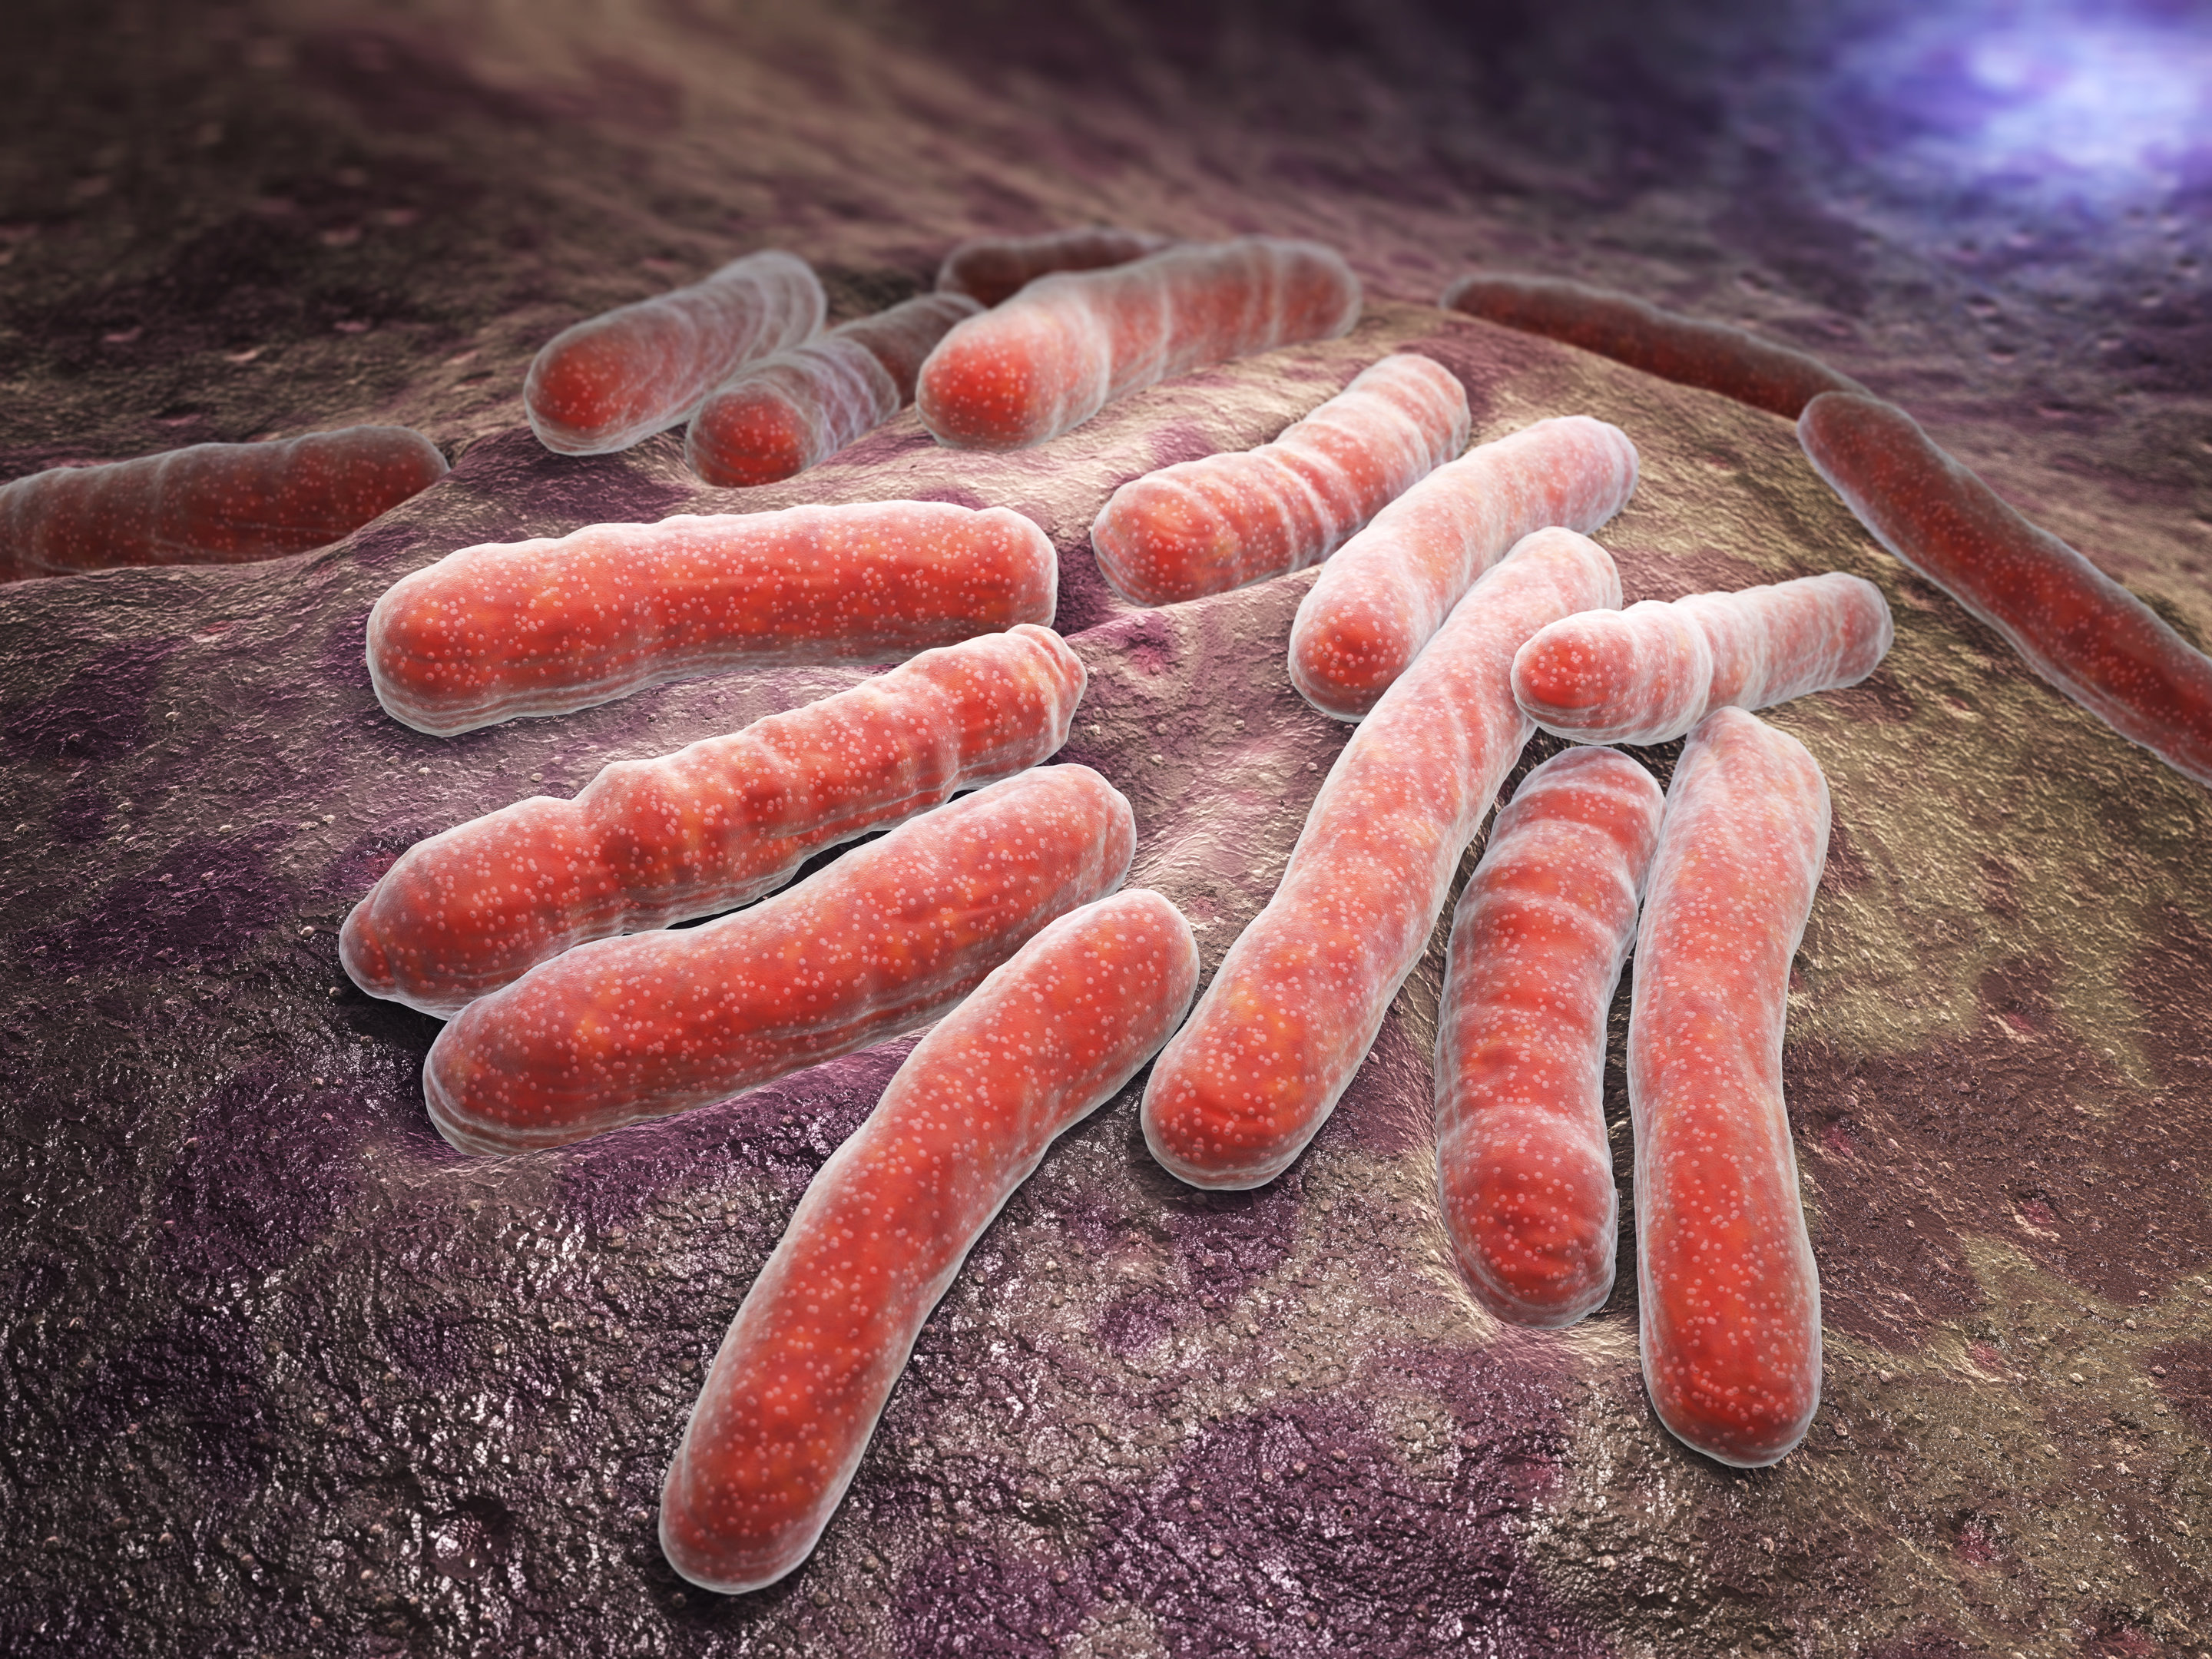 This study finds higher doses of rifampin may lead to faster elimination of TB bacteria. Credit: ATS via MedicalXpress.com